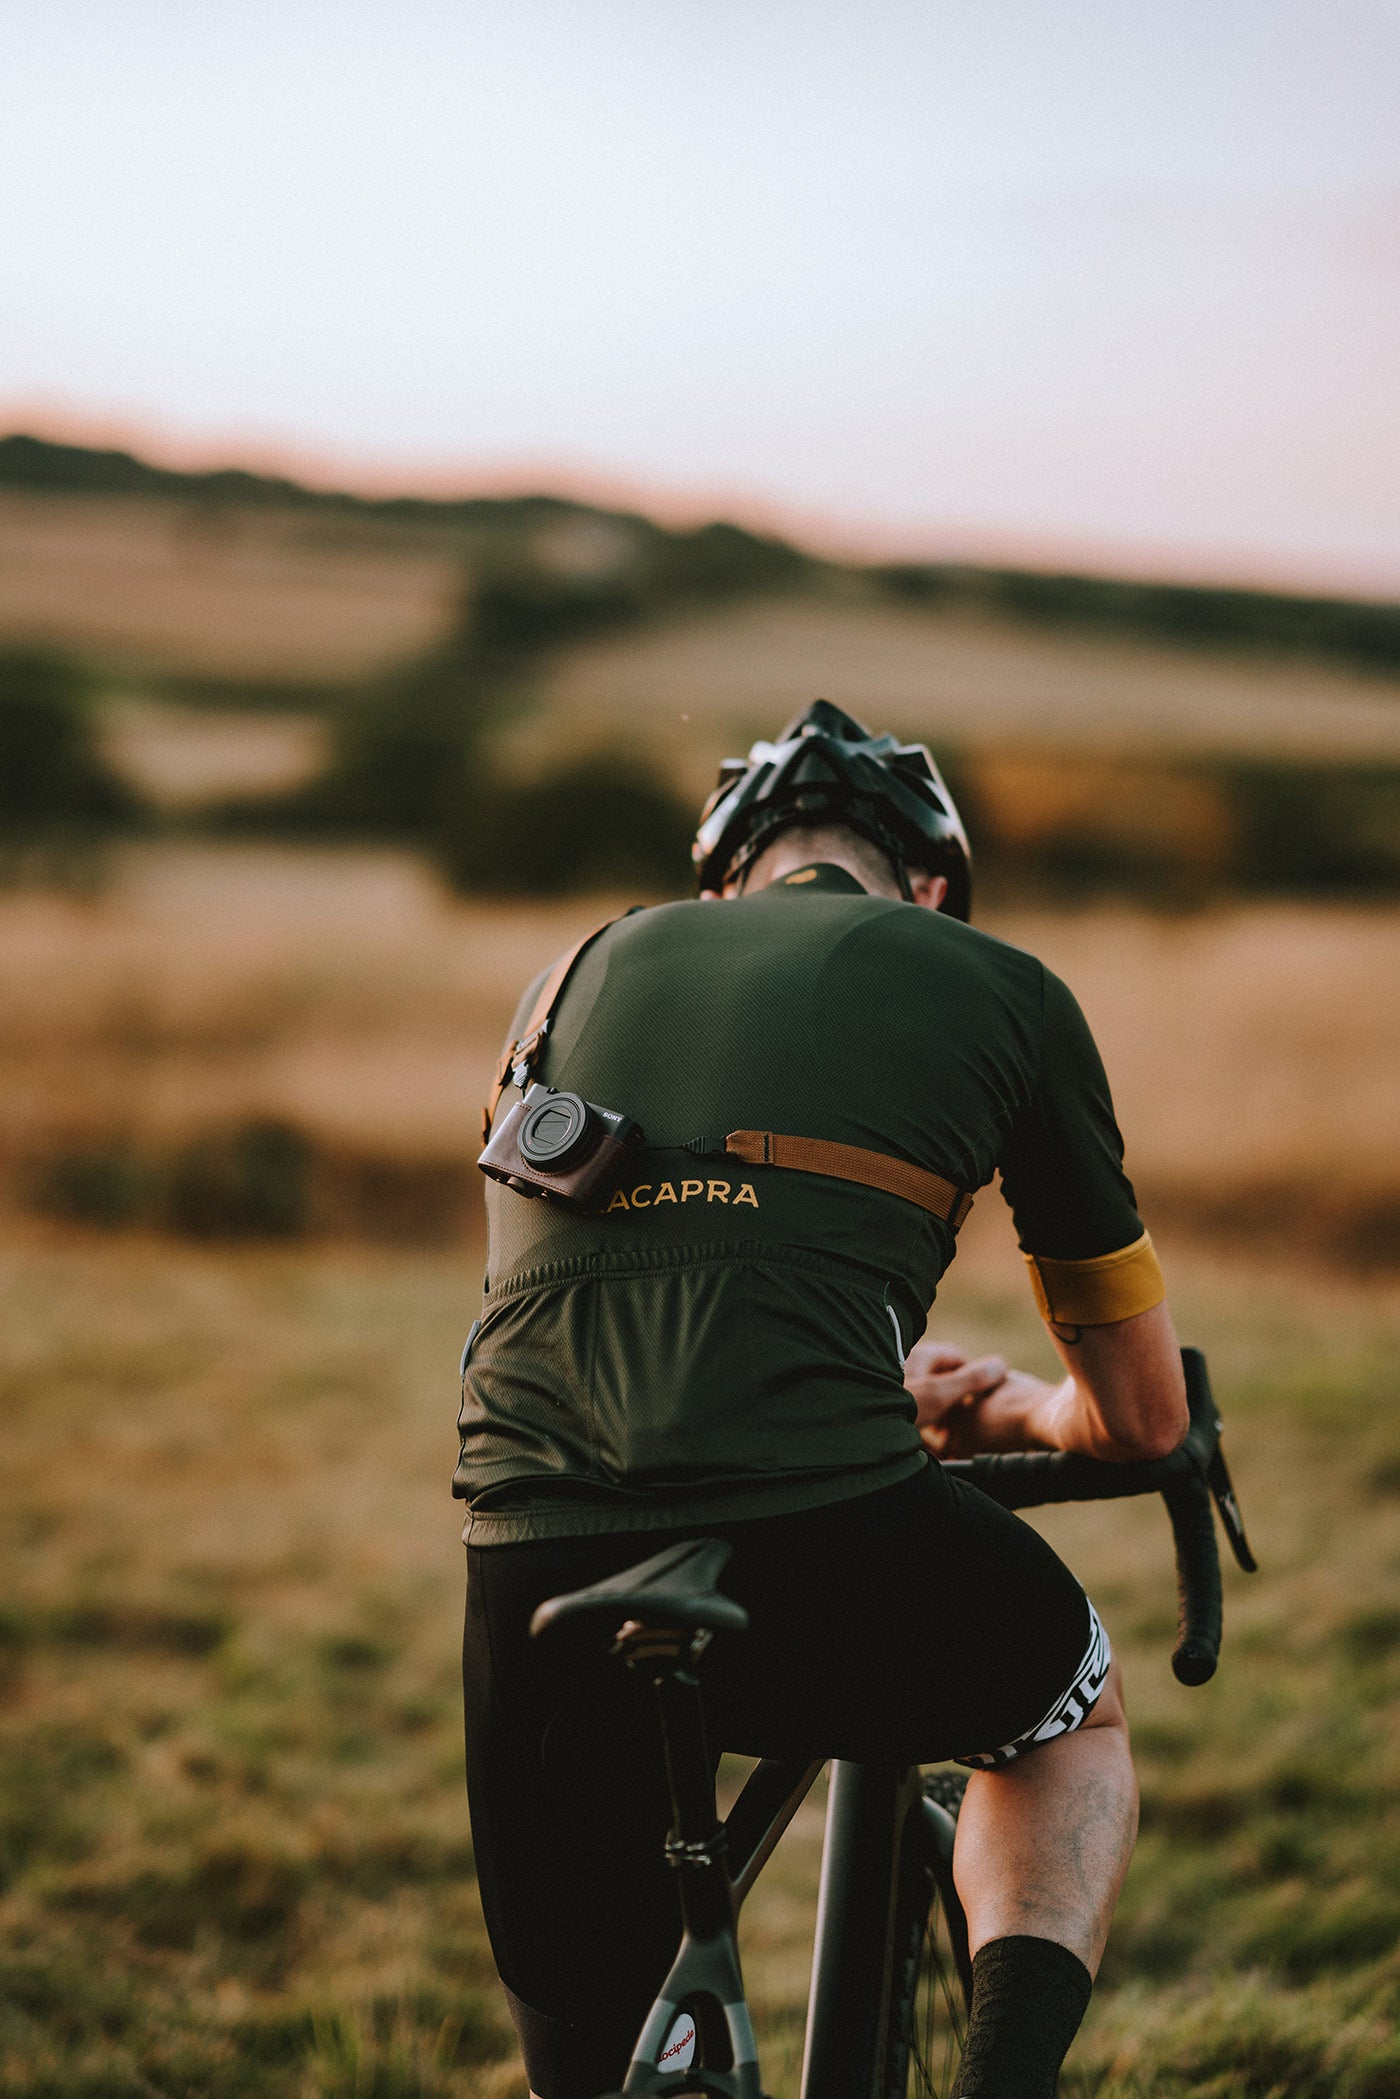 Cycling Tips - Taking Better Bike Photos with the Sony RX100